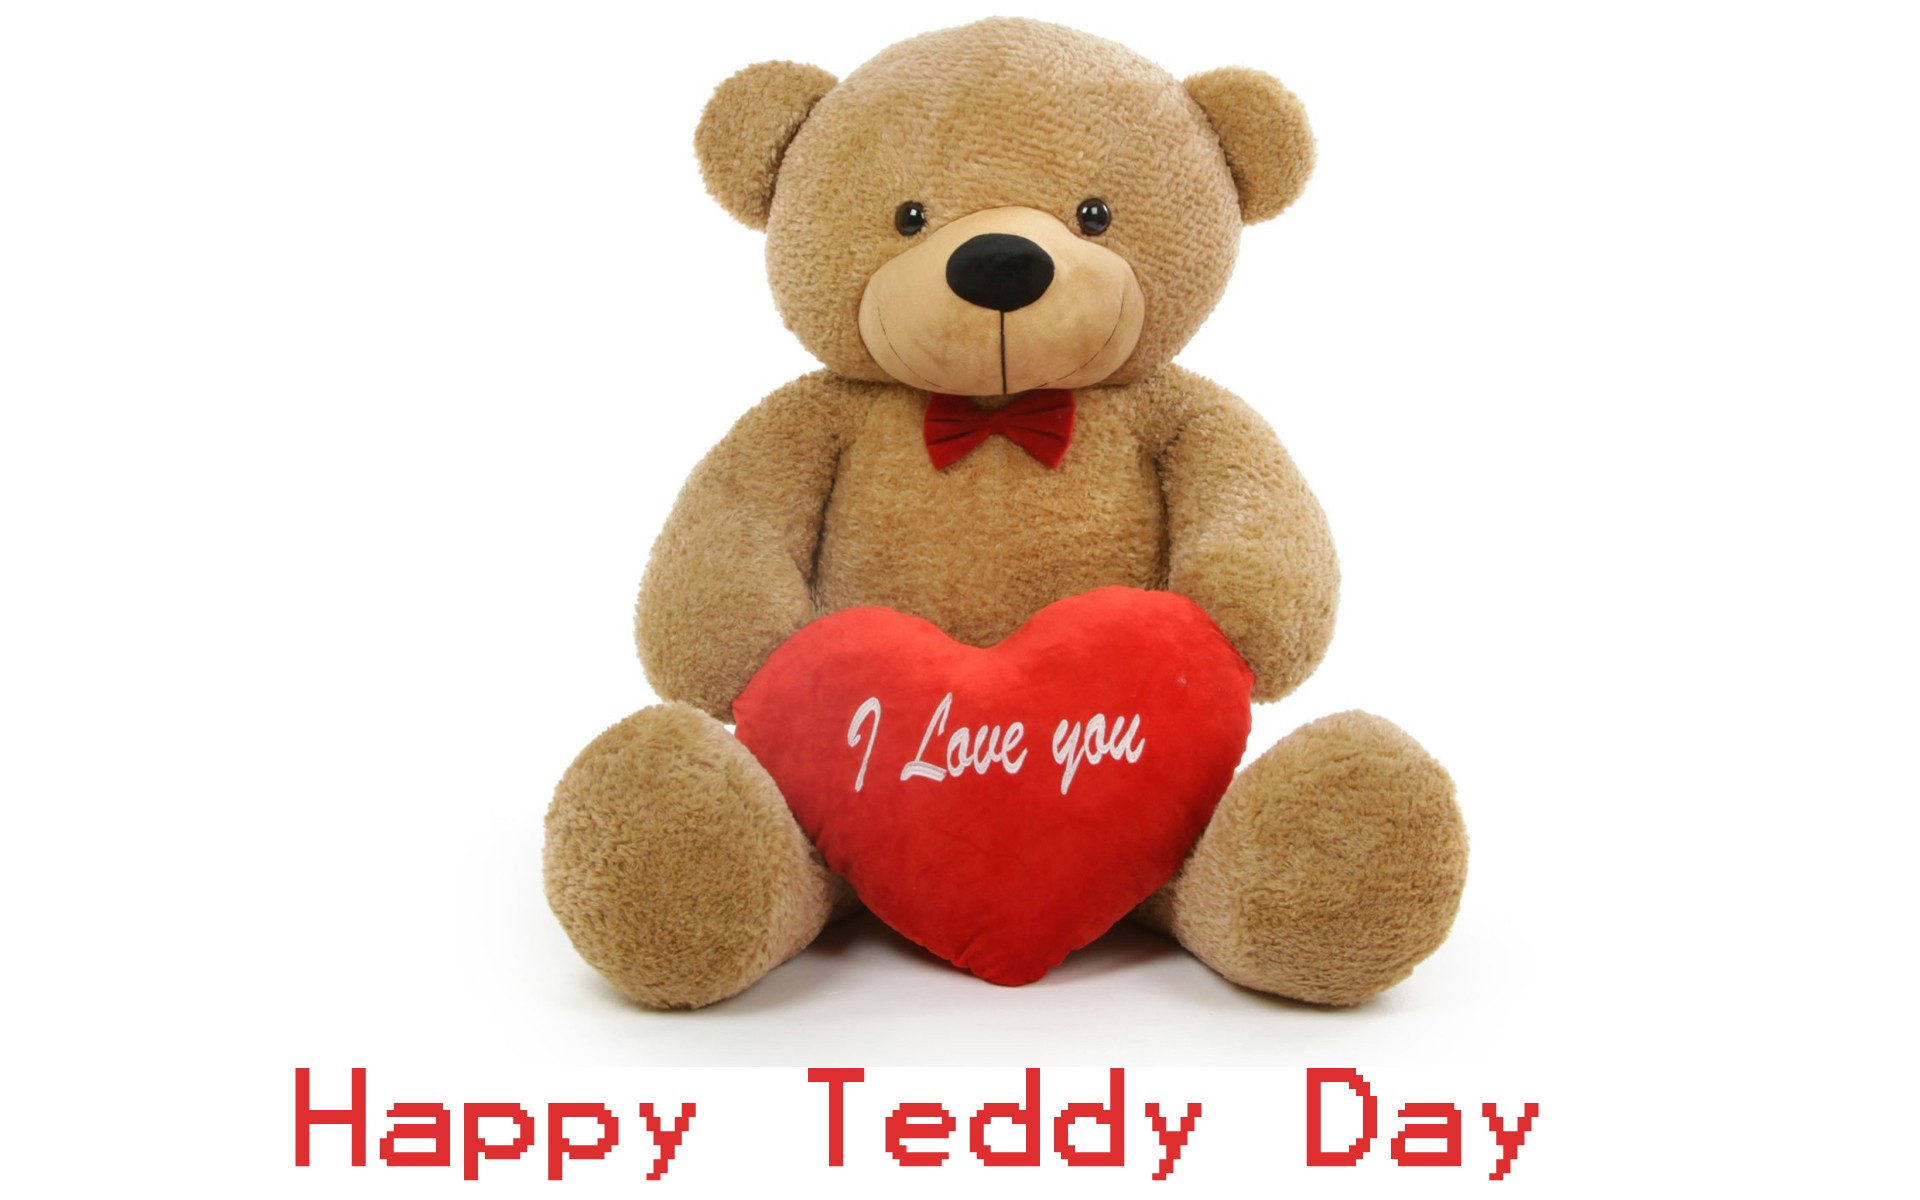 teddy day images for whatsapp dp profile wallpapers u2013 free